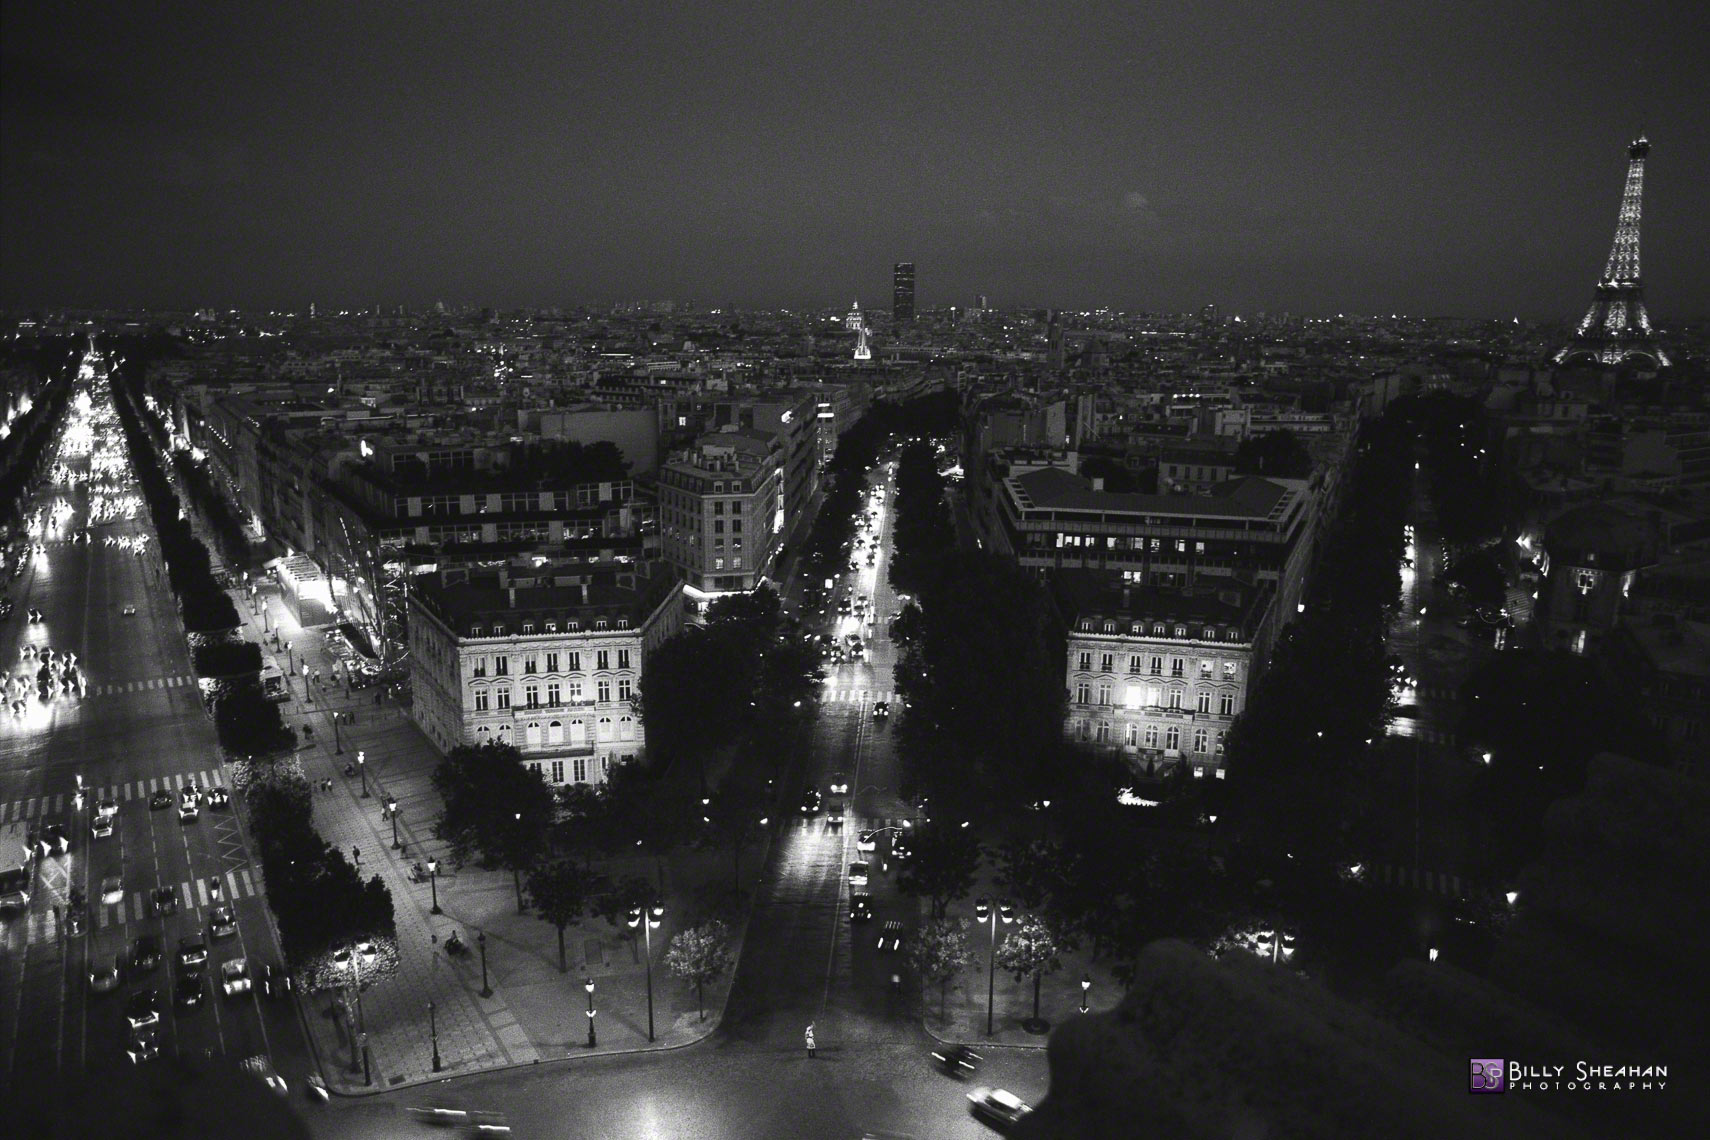 Avenue_des_Champs-Elysees_et_Tour_Eiffel_from_top_of_Arc_de_Triomphe__Paris__France_Paris-1358_19_D